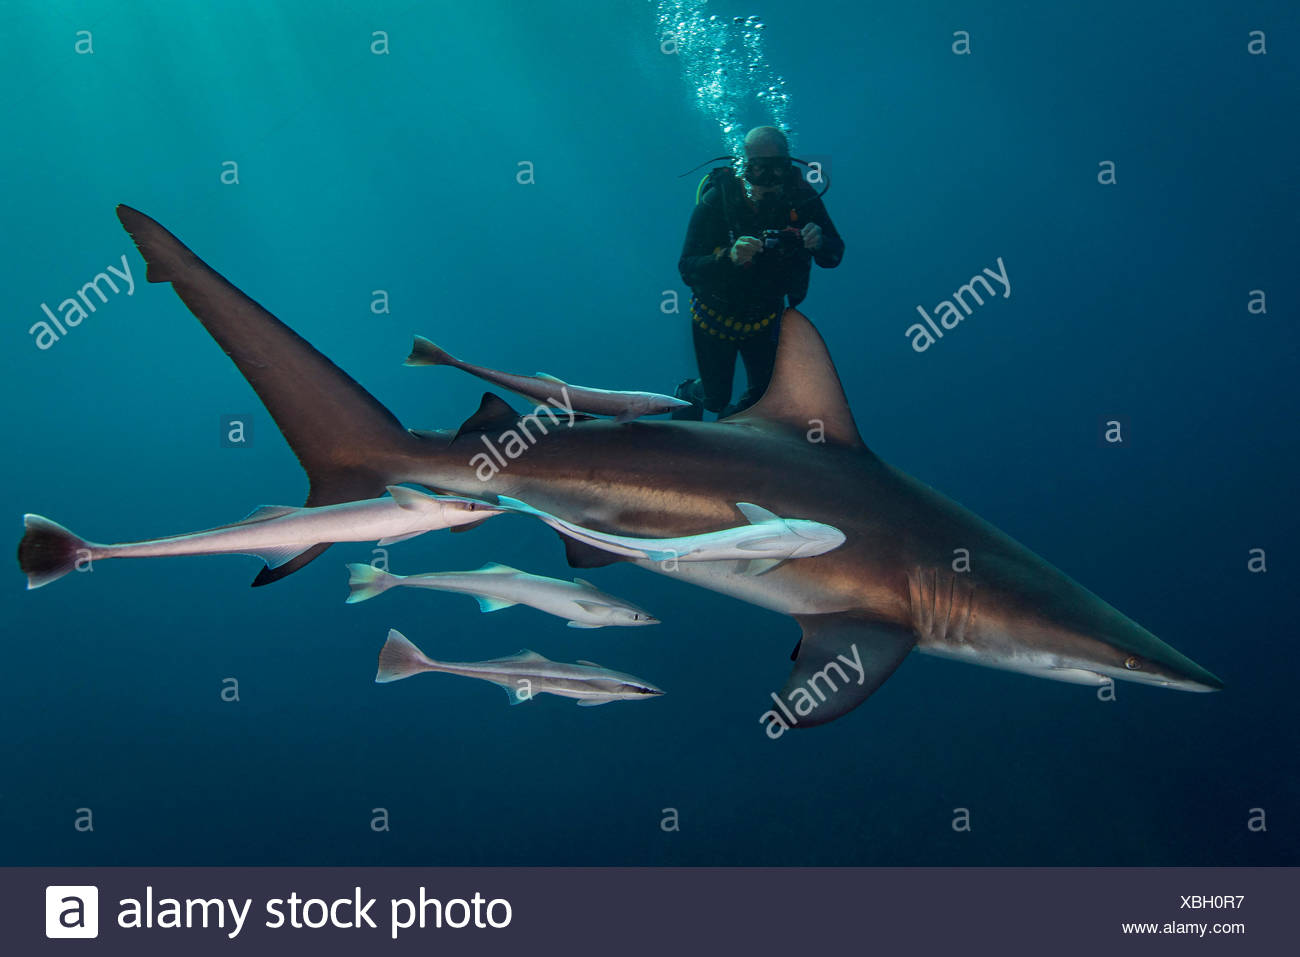 Large Oceanic Blacktip Shark (Carcharhinus Limbatus) circling diver, Aliwal Shoal, South Africa Stock Photo